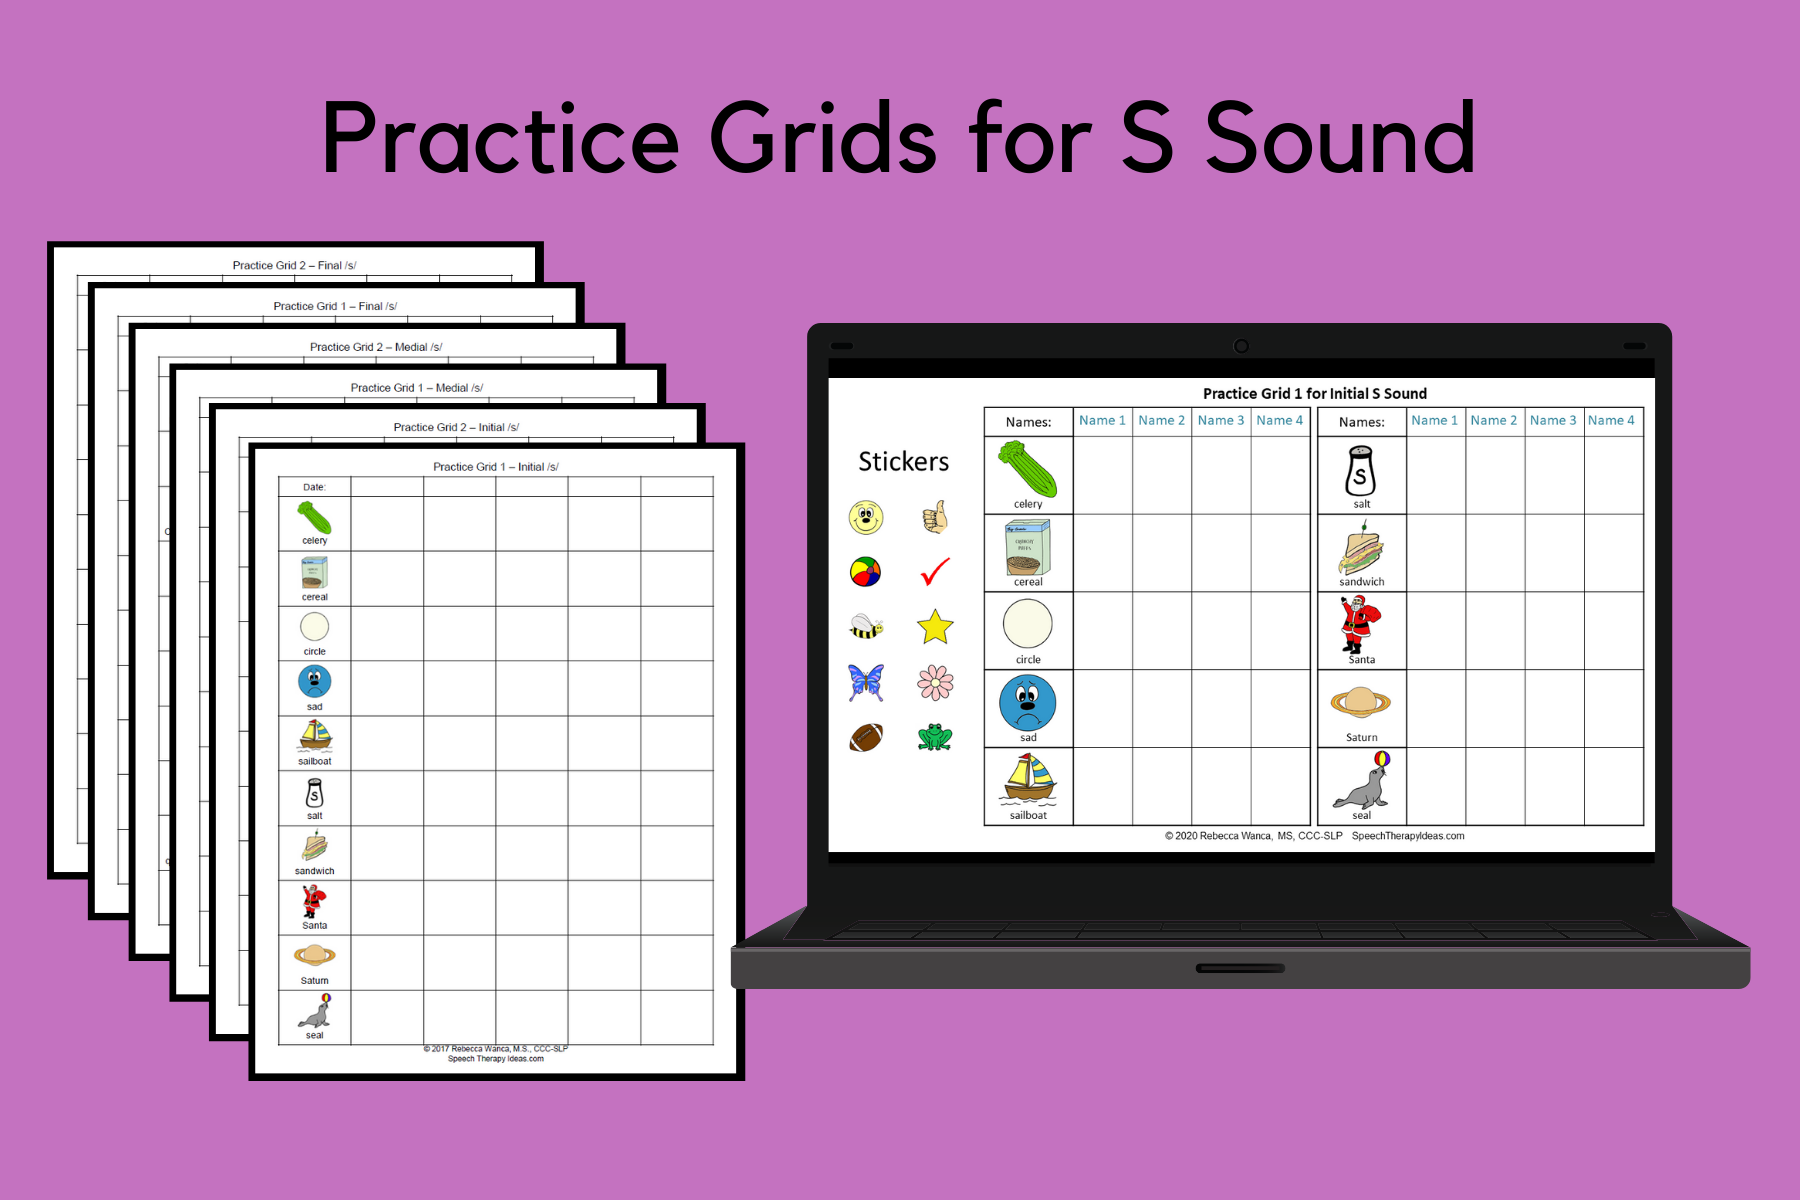 Practice Grids for S Sound